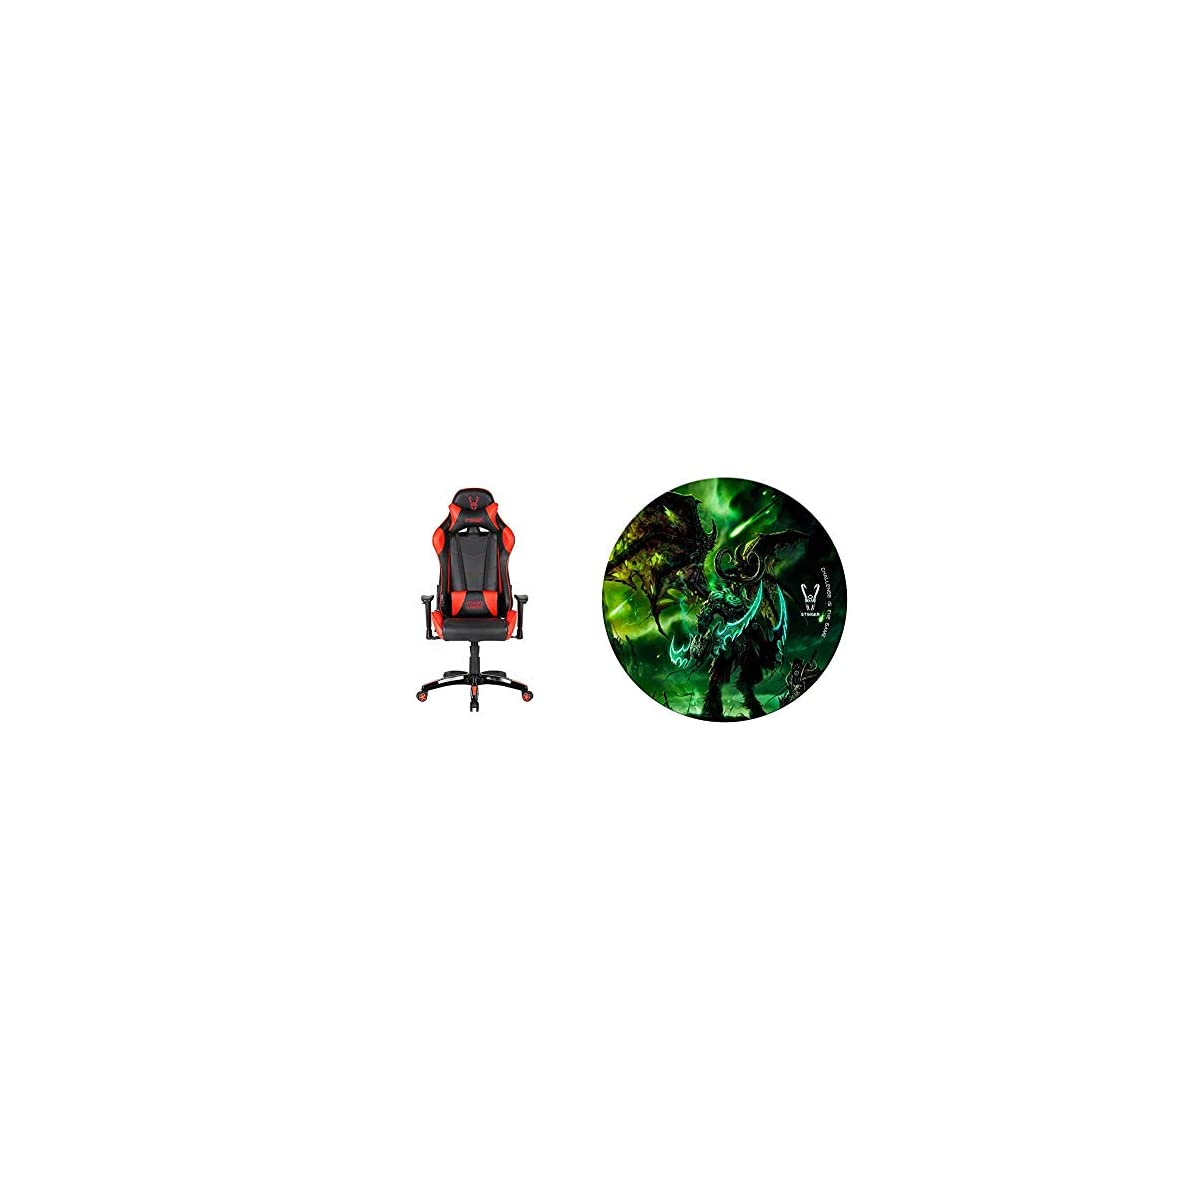 41cMBvZIO0L. SS1200  - Woxter Stinger Station Red - Silla Gaming + Alfombrilla Gaming de Suelo